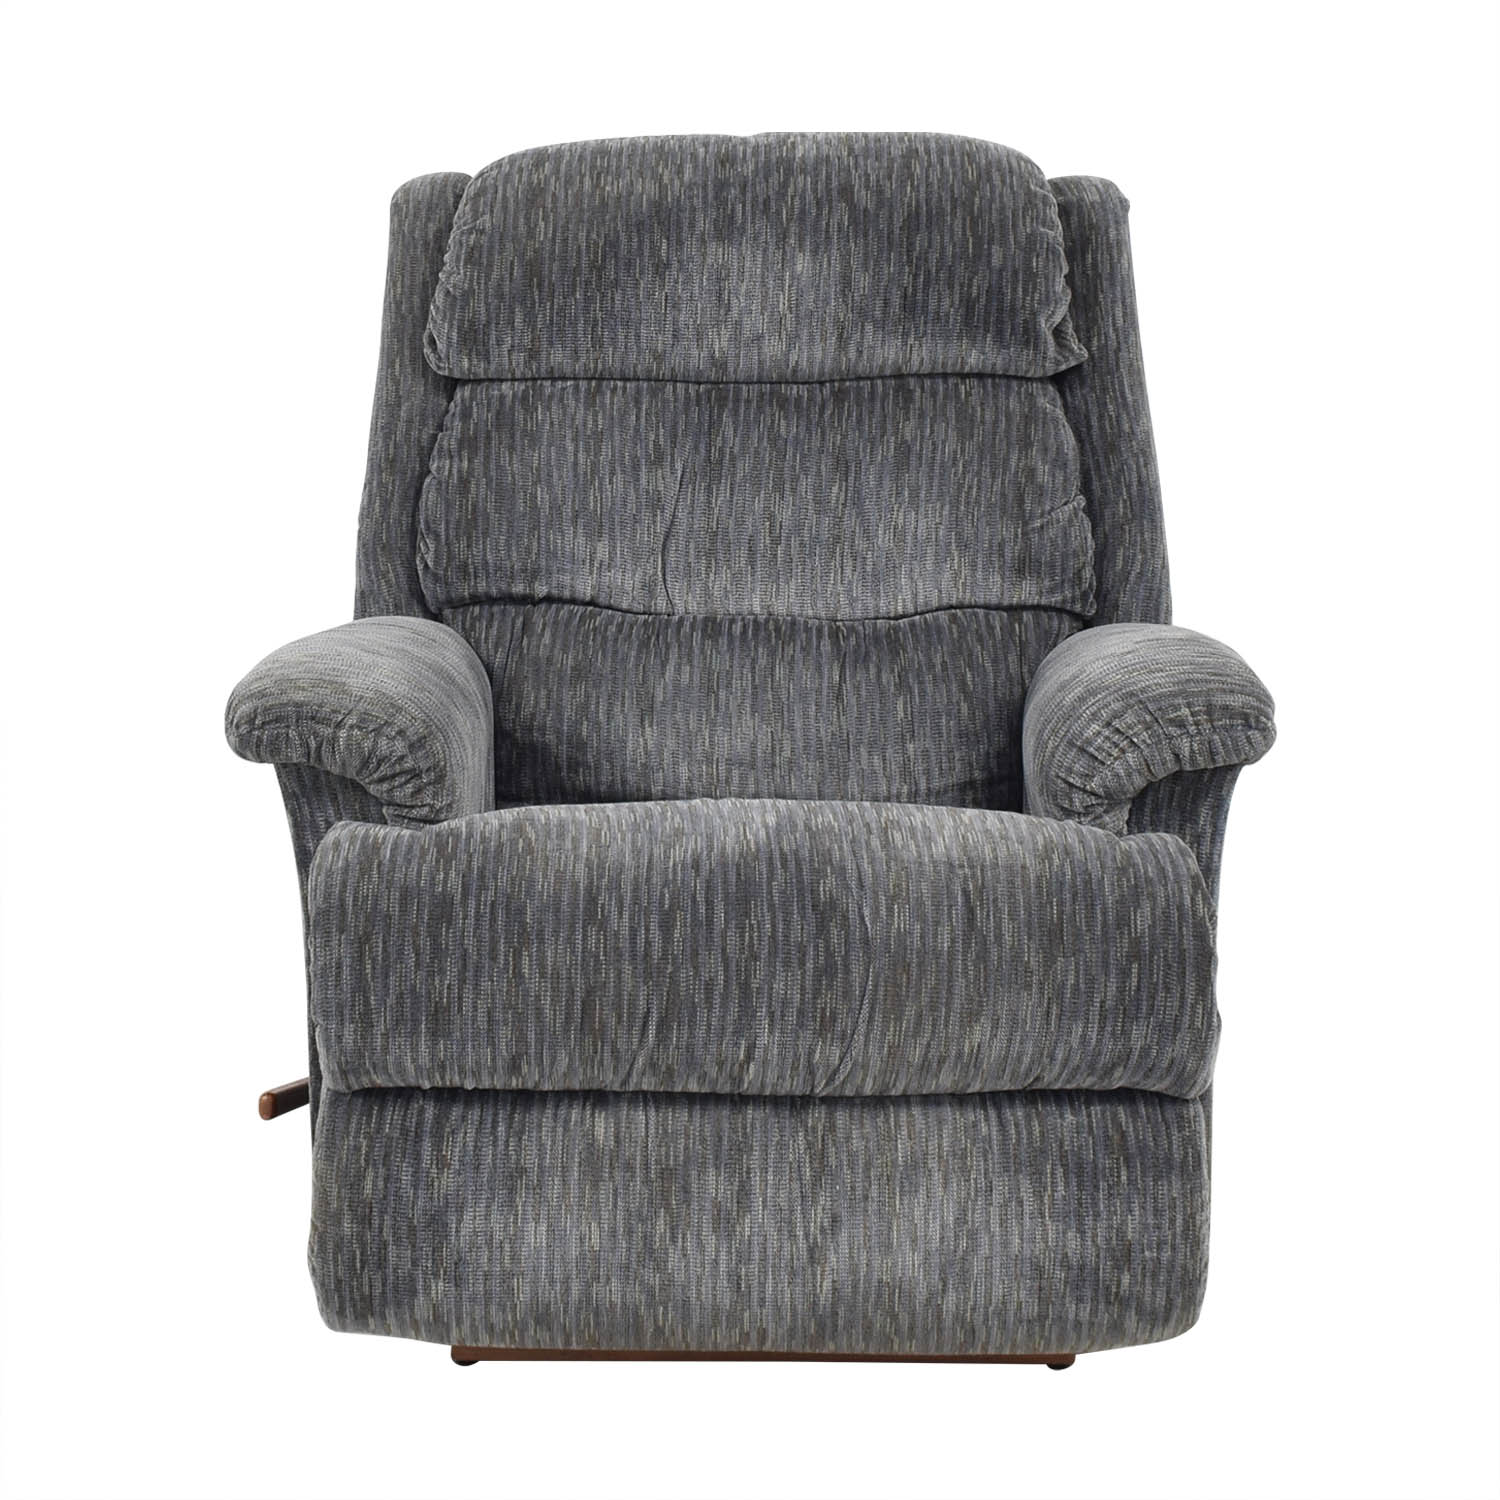 La-Z-Boy La-Z-Boy Overstuffed Recliner for sale